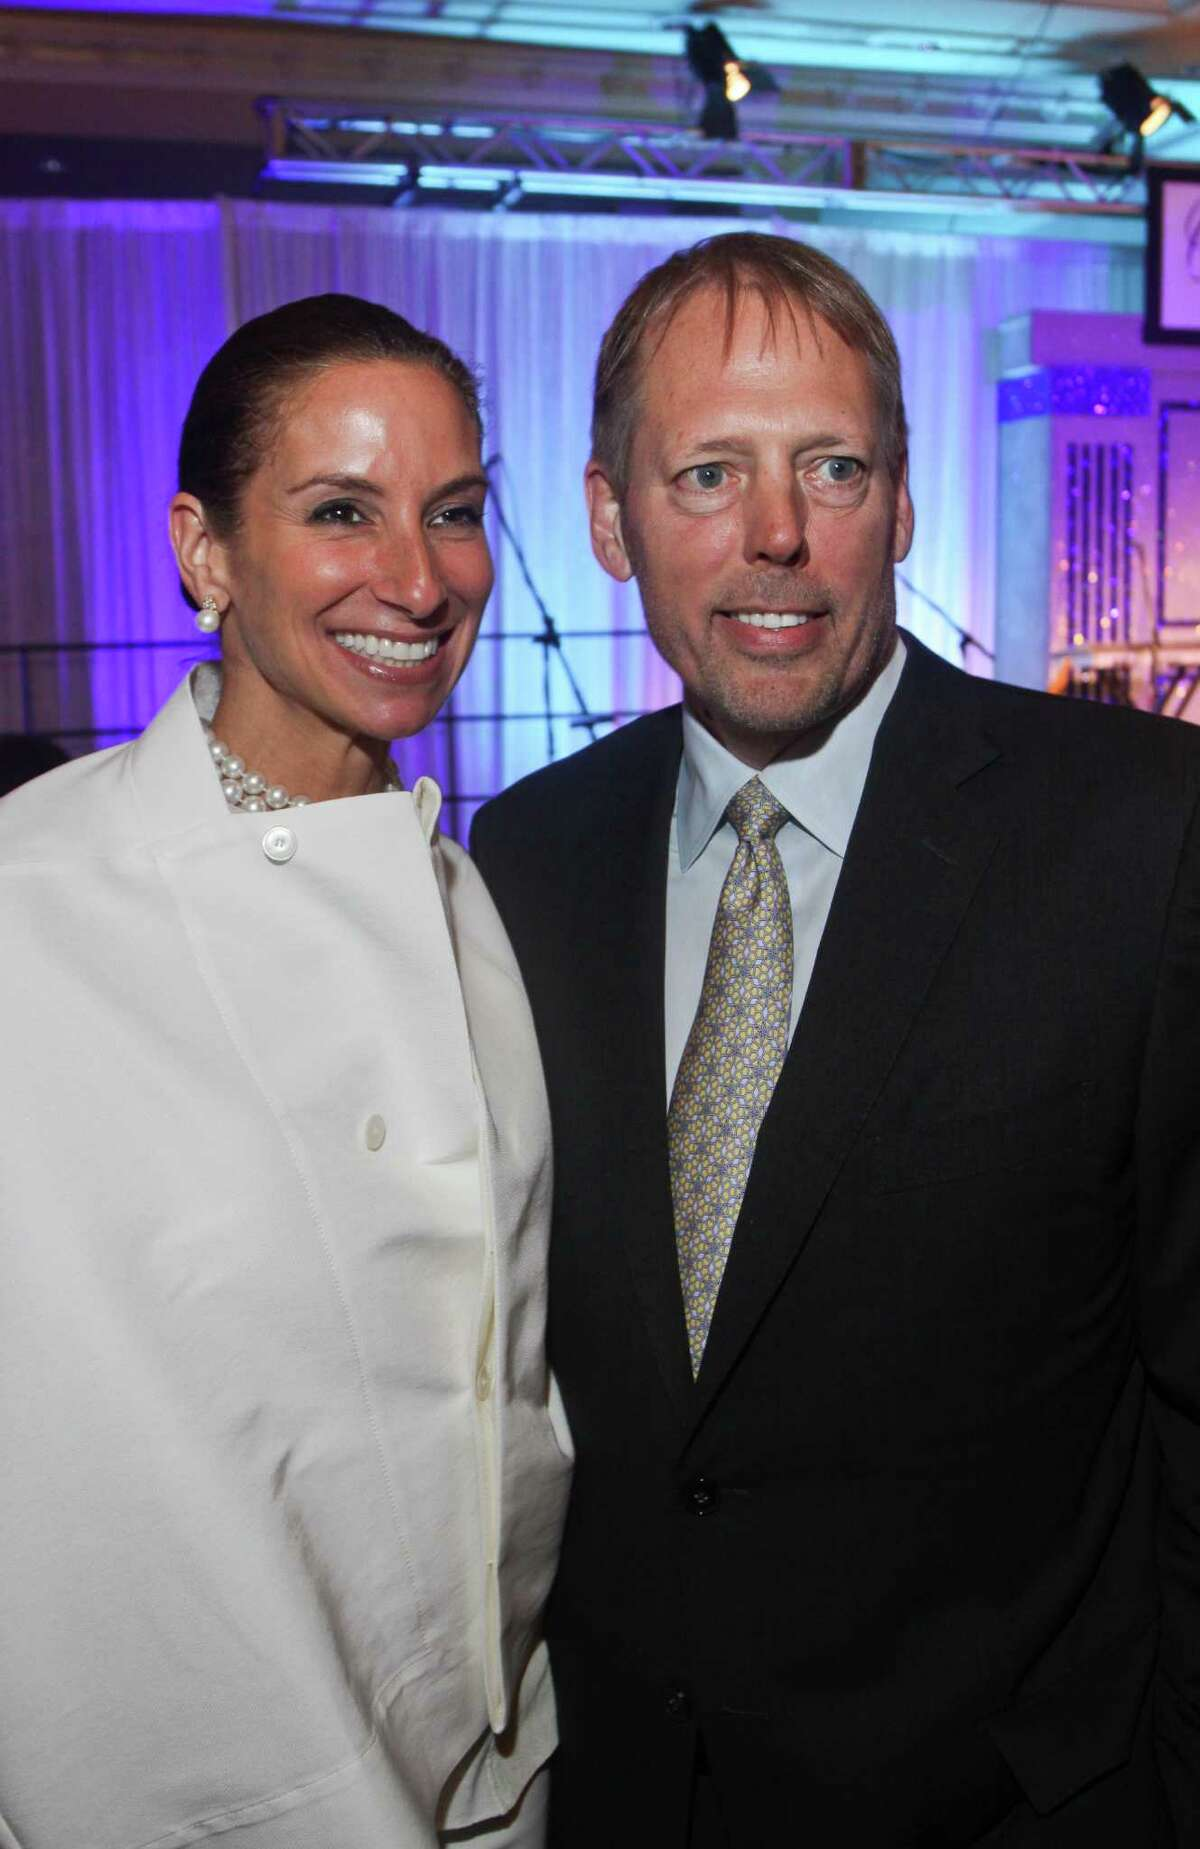 Honoree Lisa Holthouse, making the Best Dressed list for the second time, was also honored along with her husband, Michael Holthouse by Kipp Academy last year.